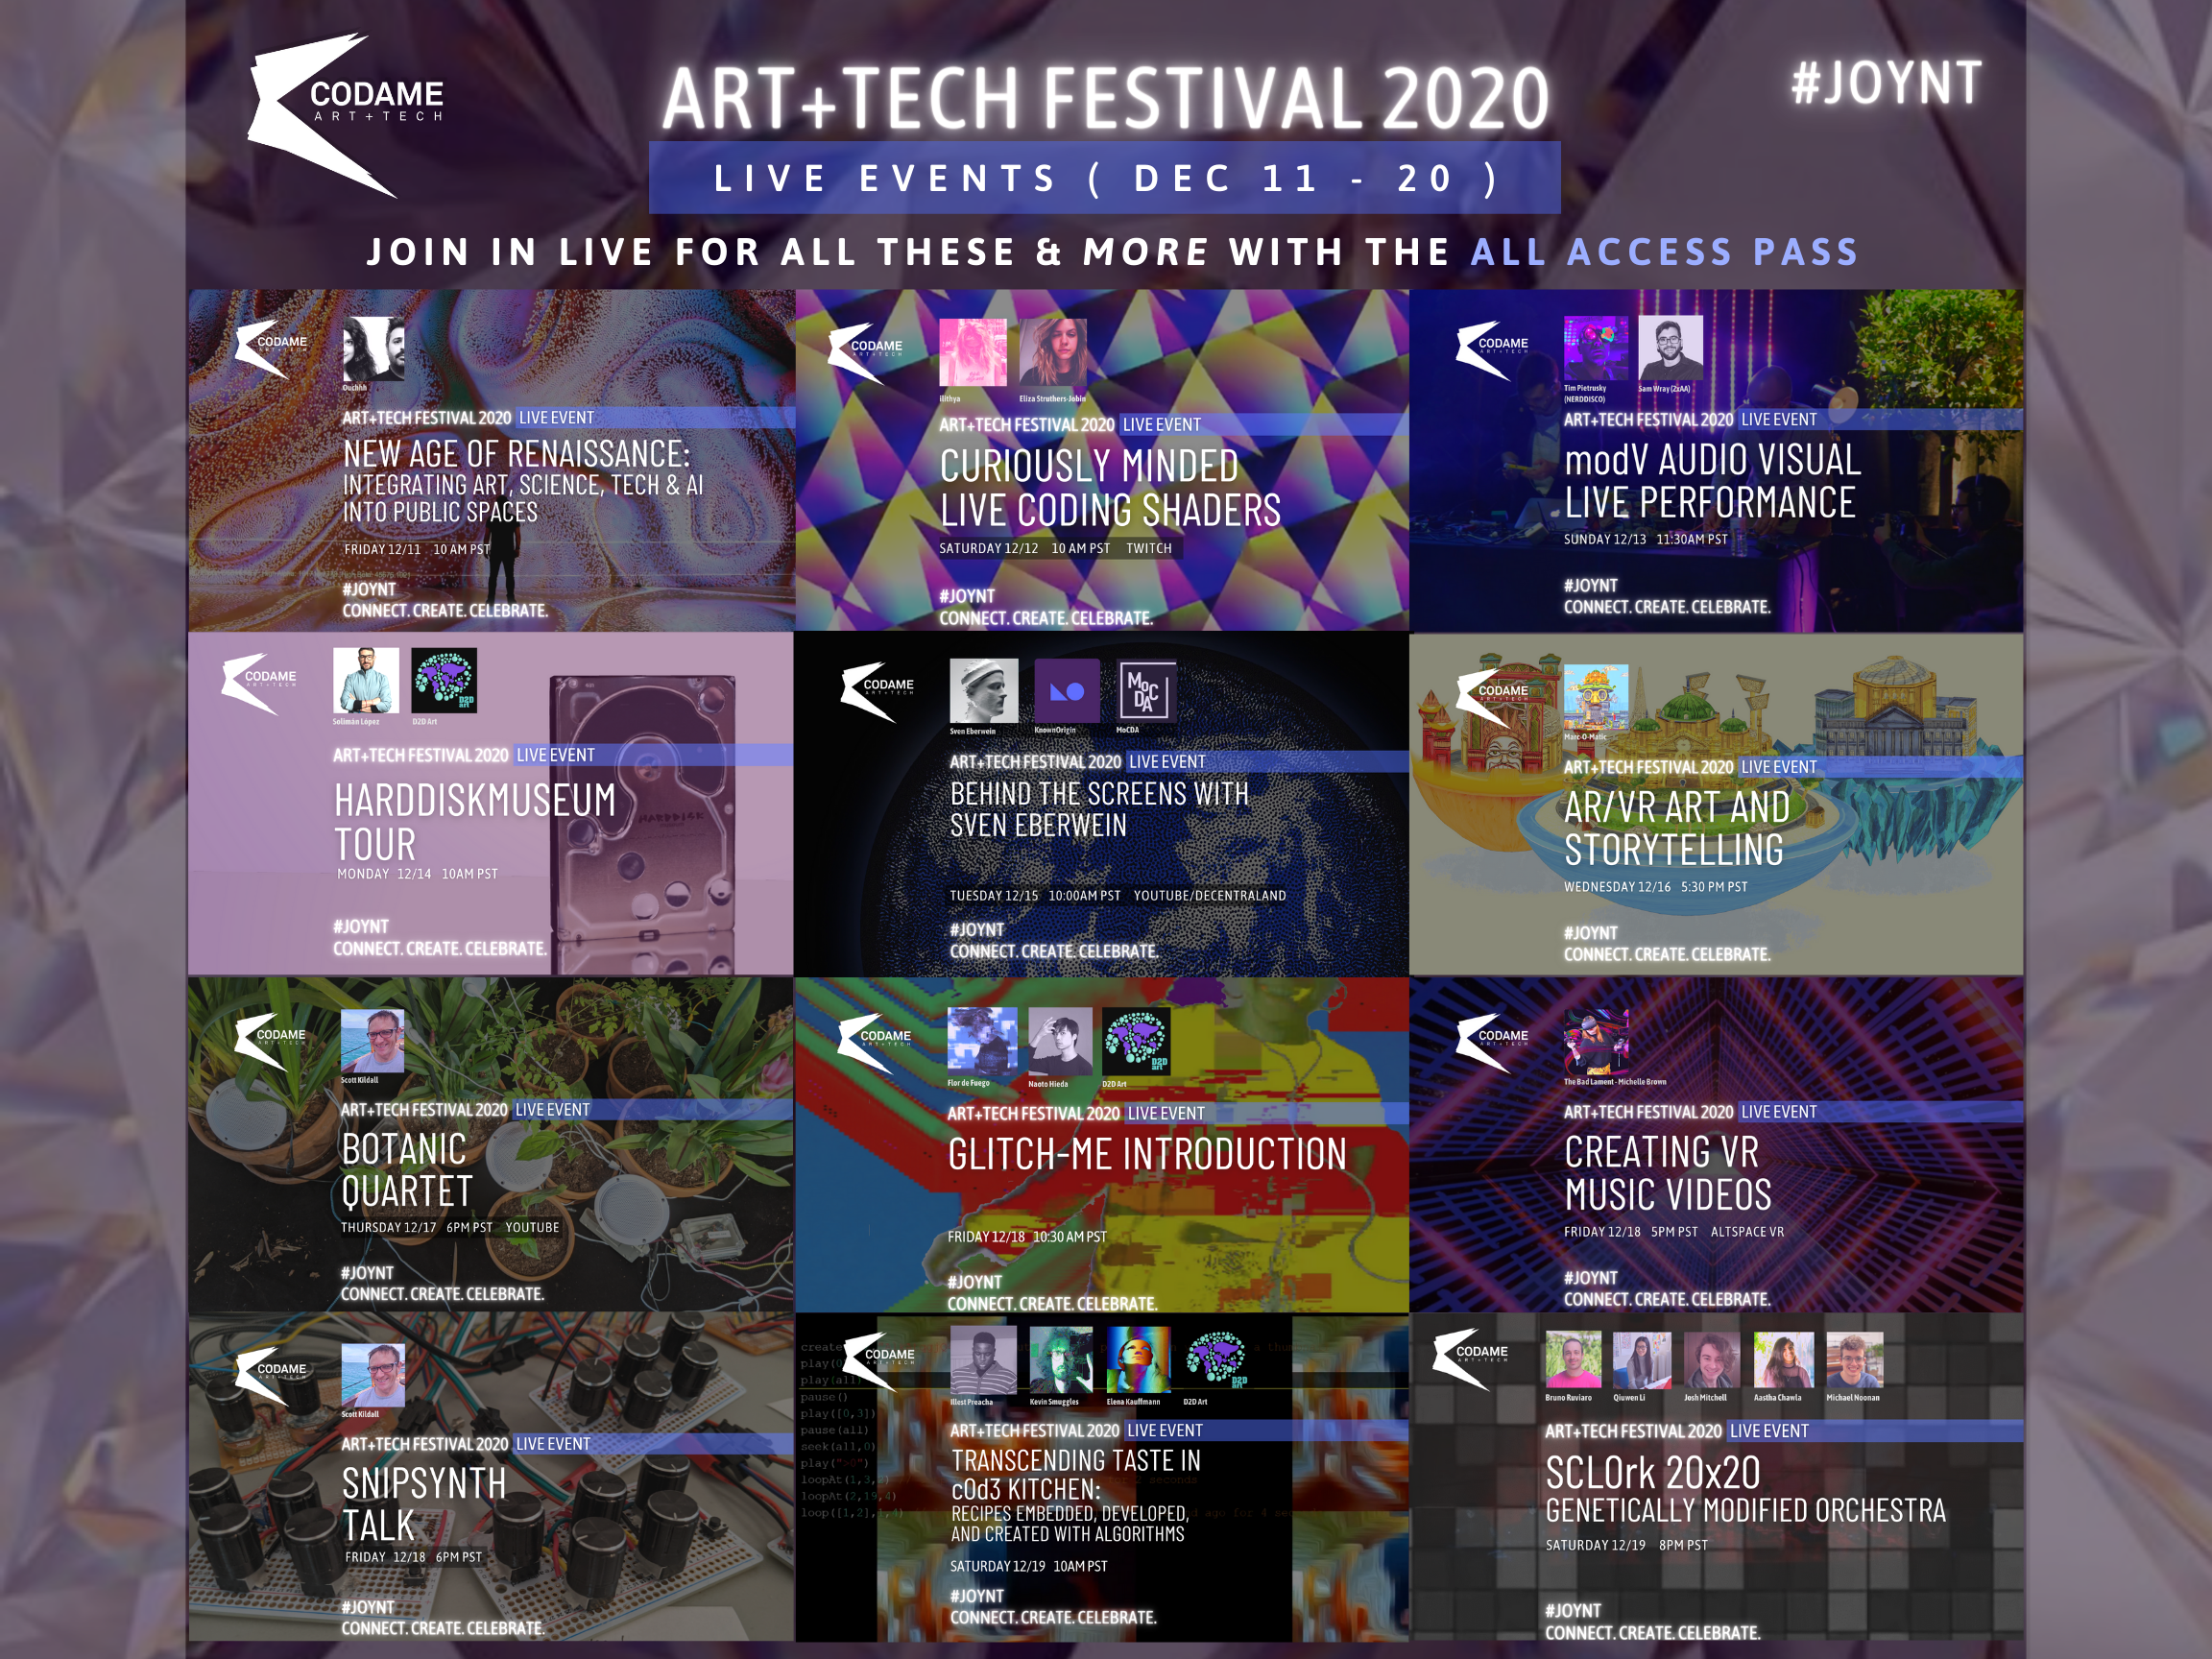 Live Events @ ART+TECH Festival 2020 『 JOYNT 』